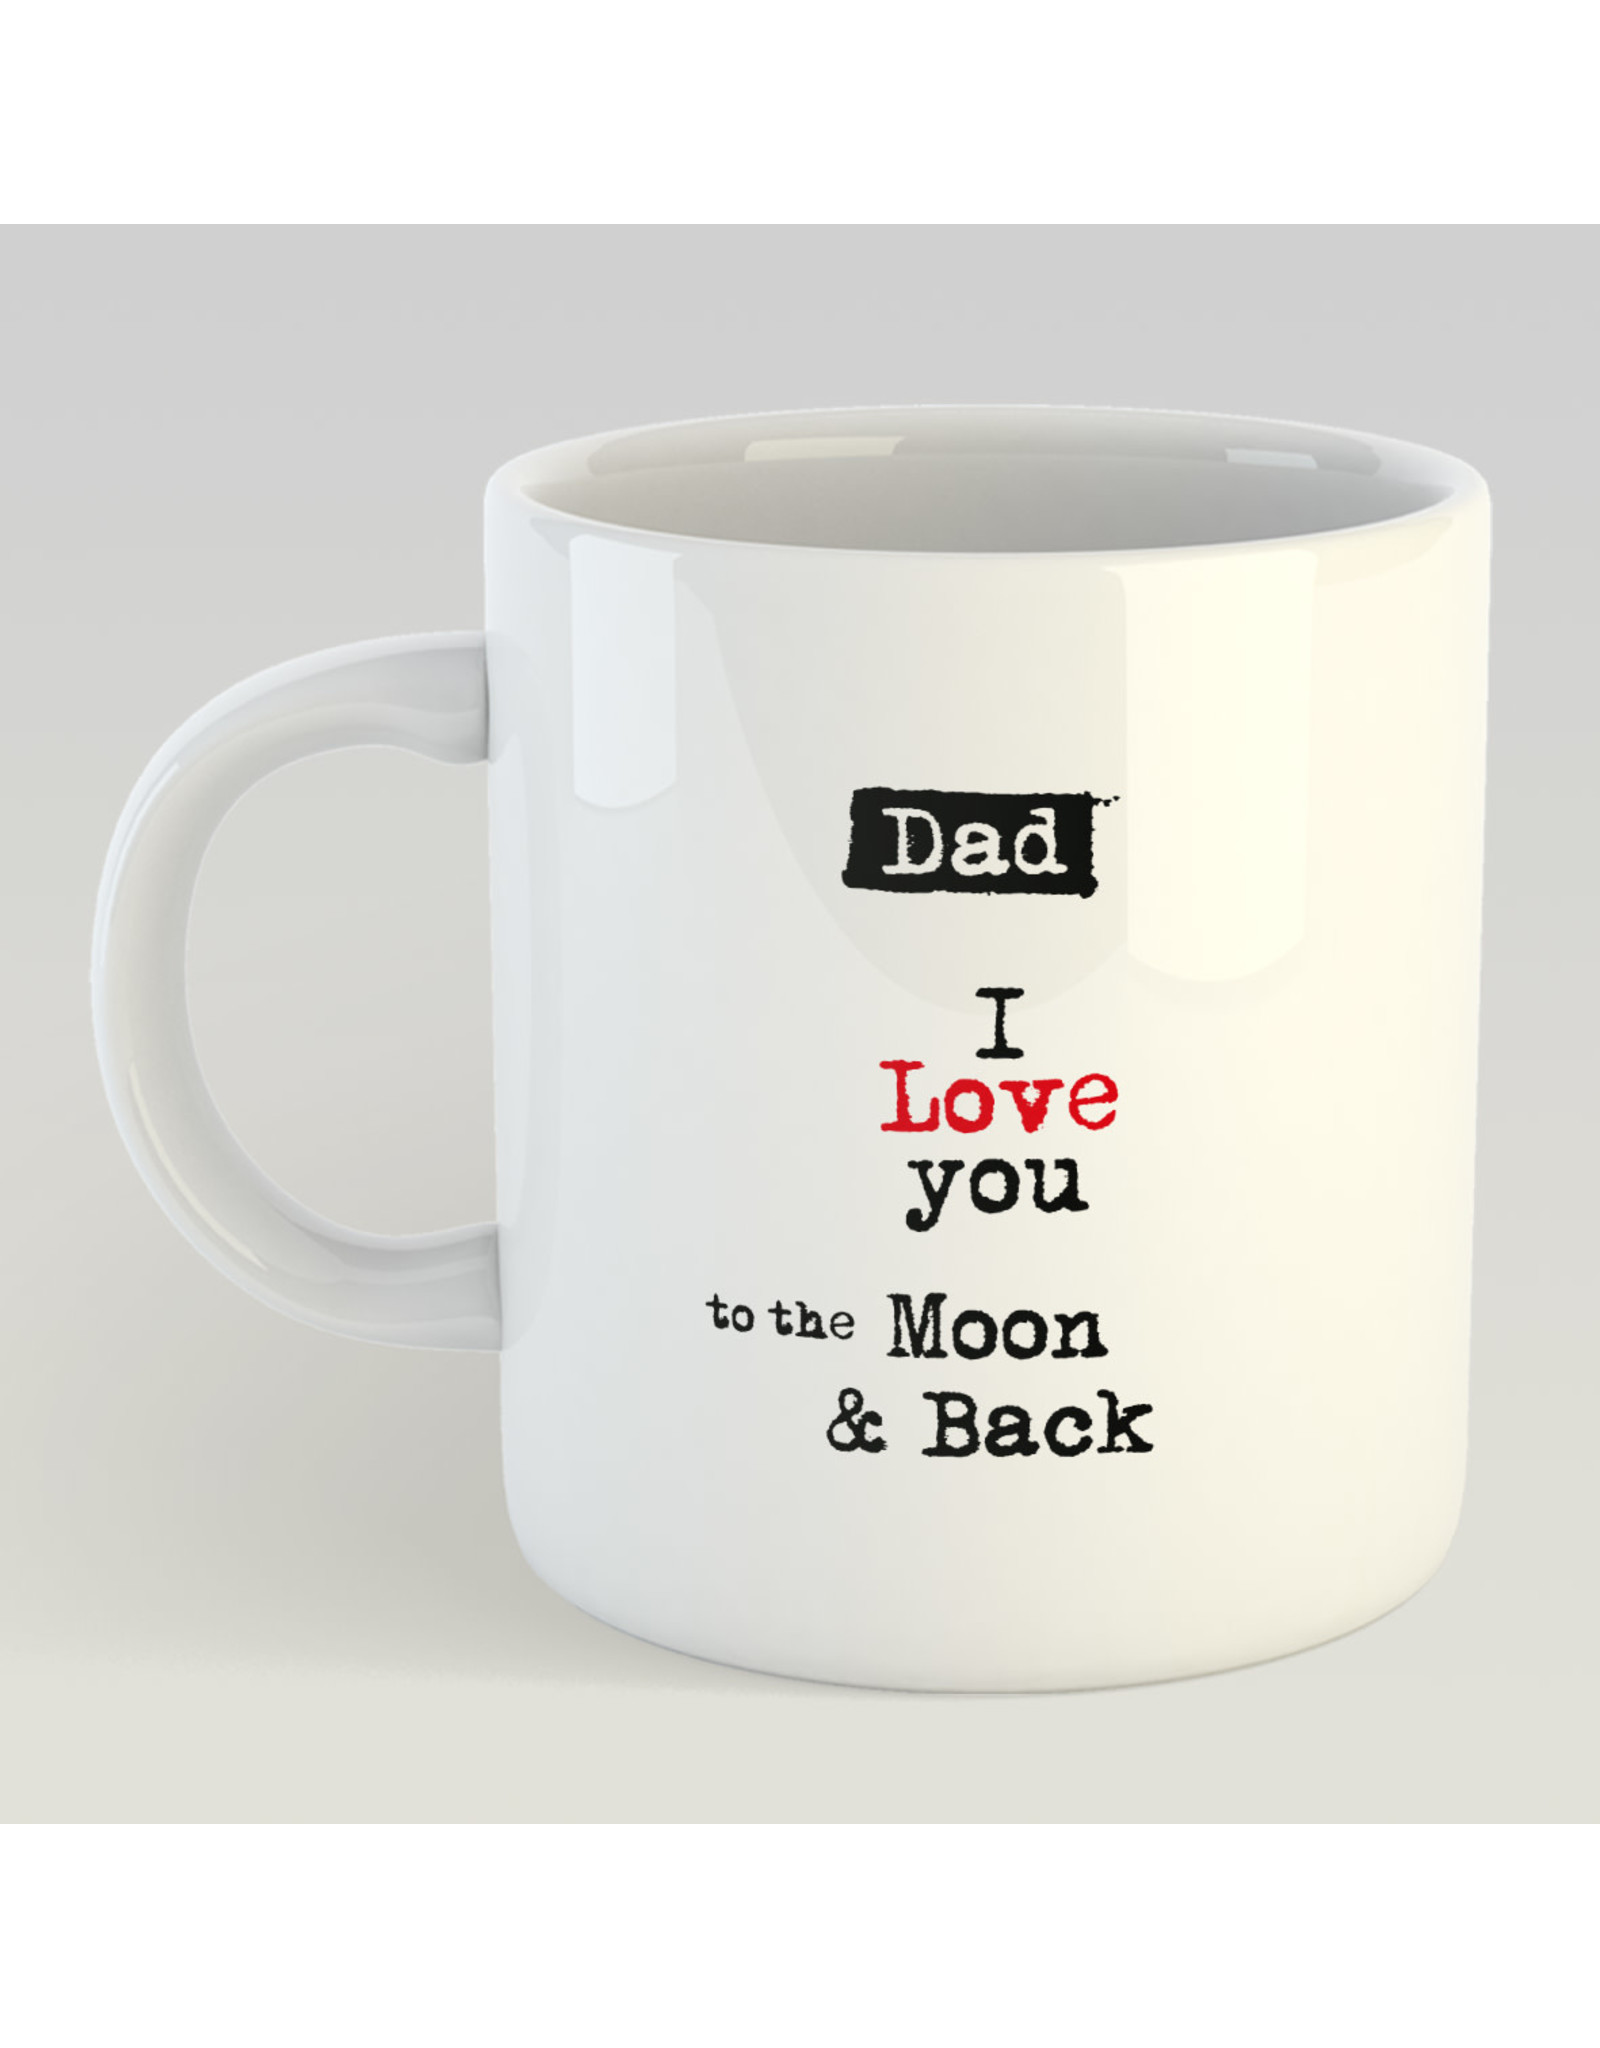 Jelly Jazz mug - dad, I love you to the moon and back